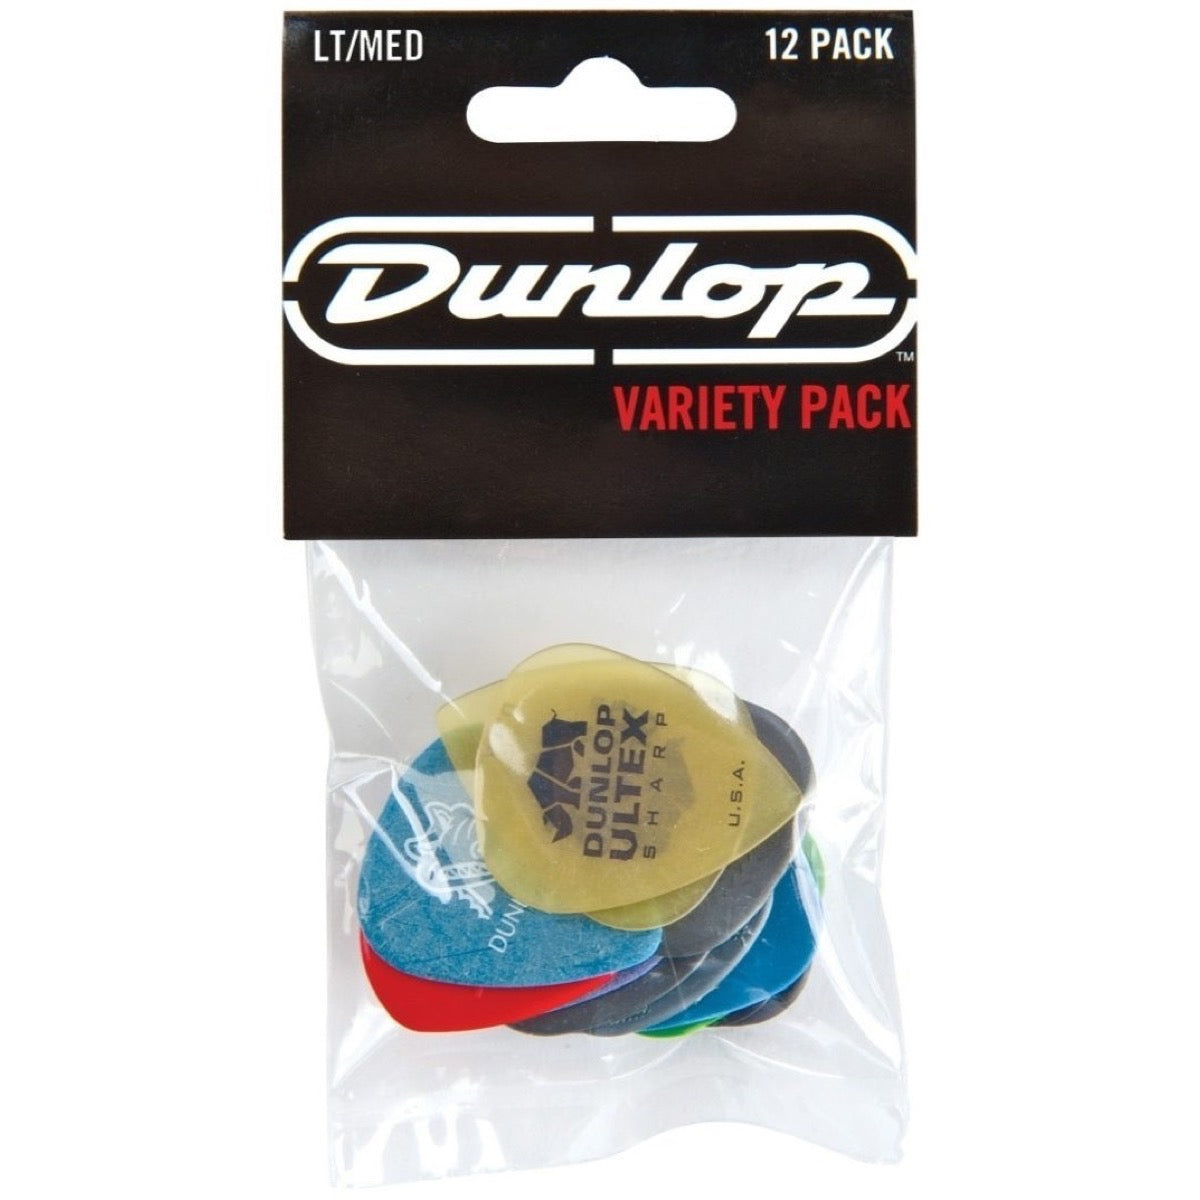 Dunlop Pick Variety Pack, PVP101, 12-Pack, ThinMedium